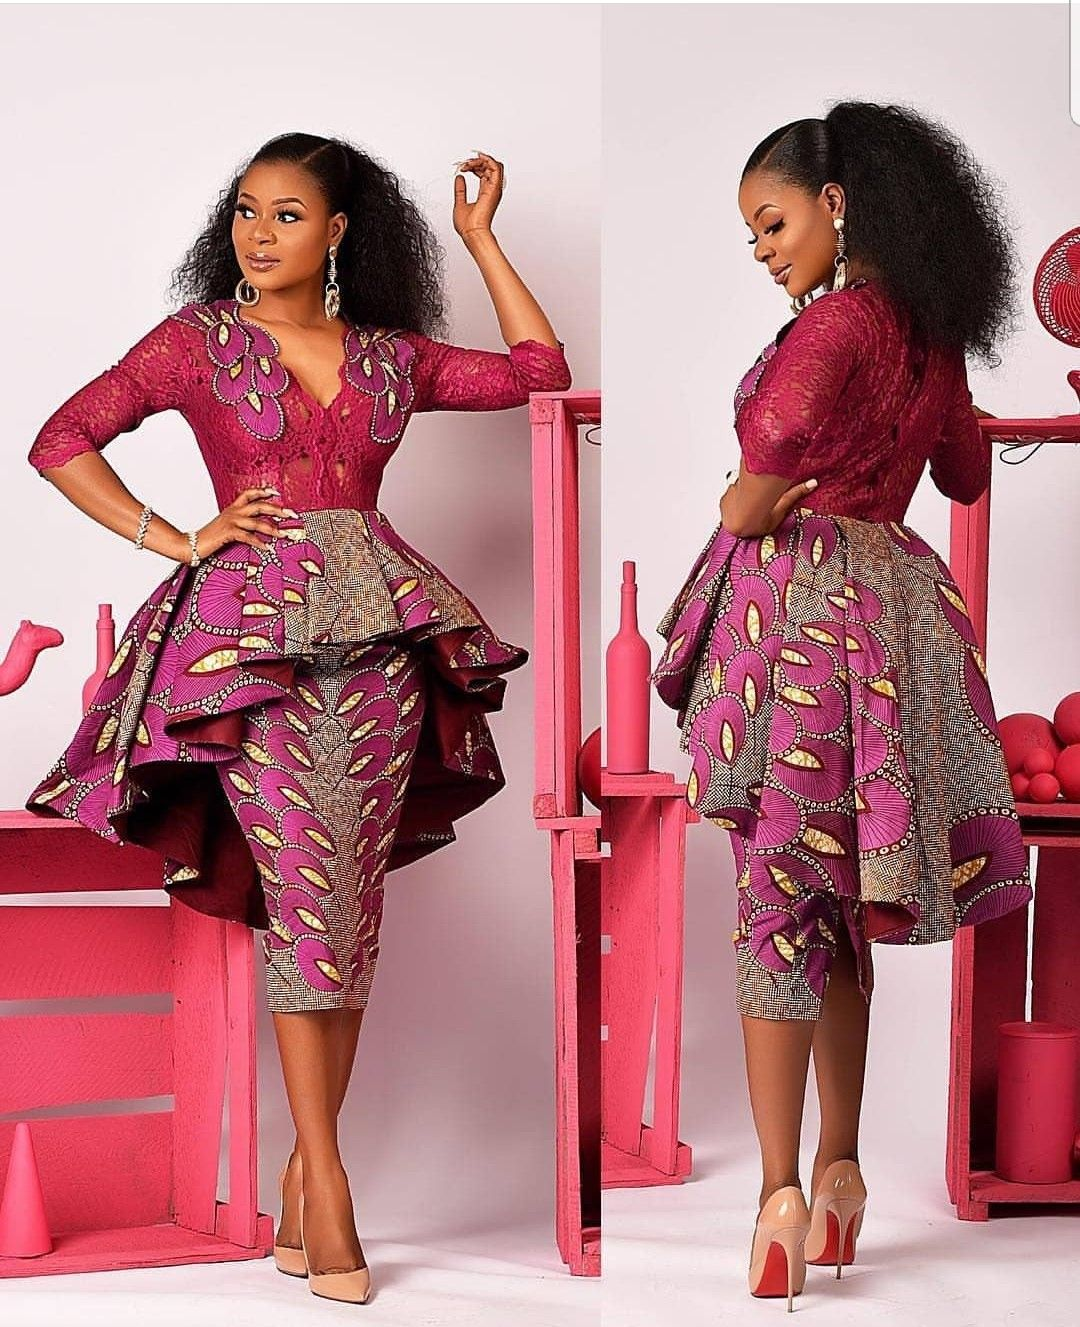 022bbf31a2a9e Short dresses   African style in 2019   African fashion, African ...